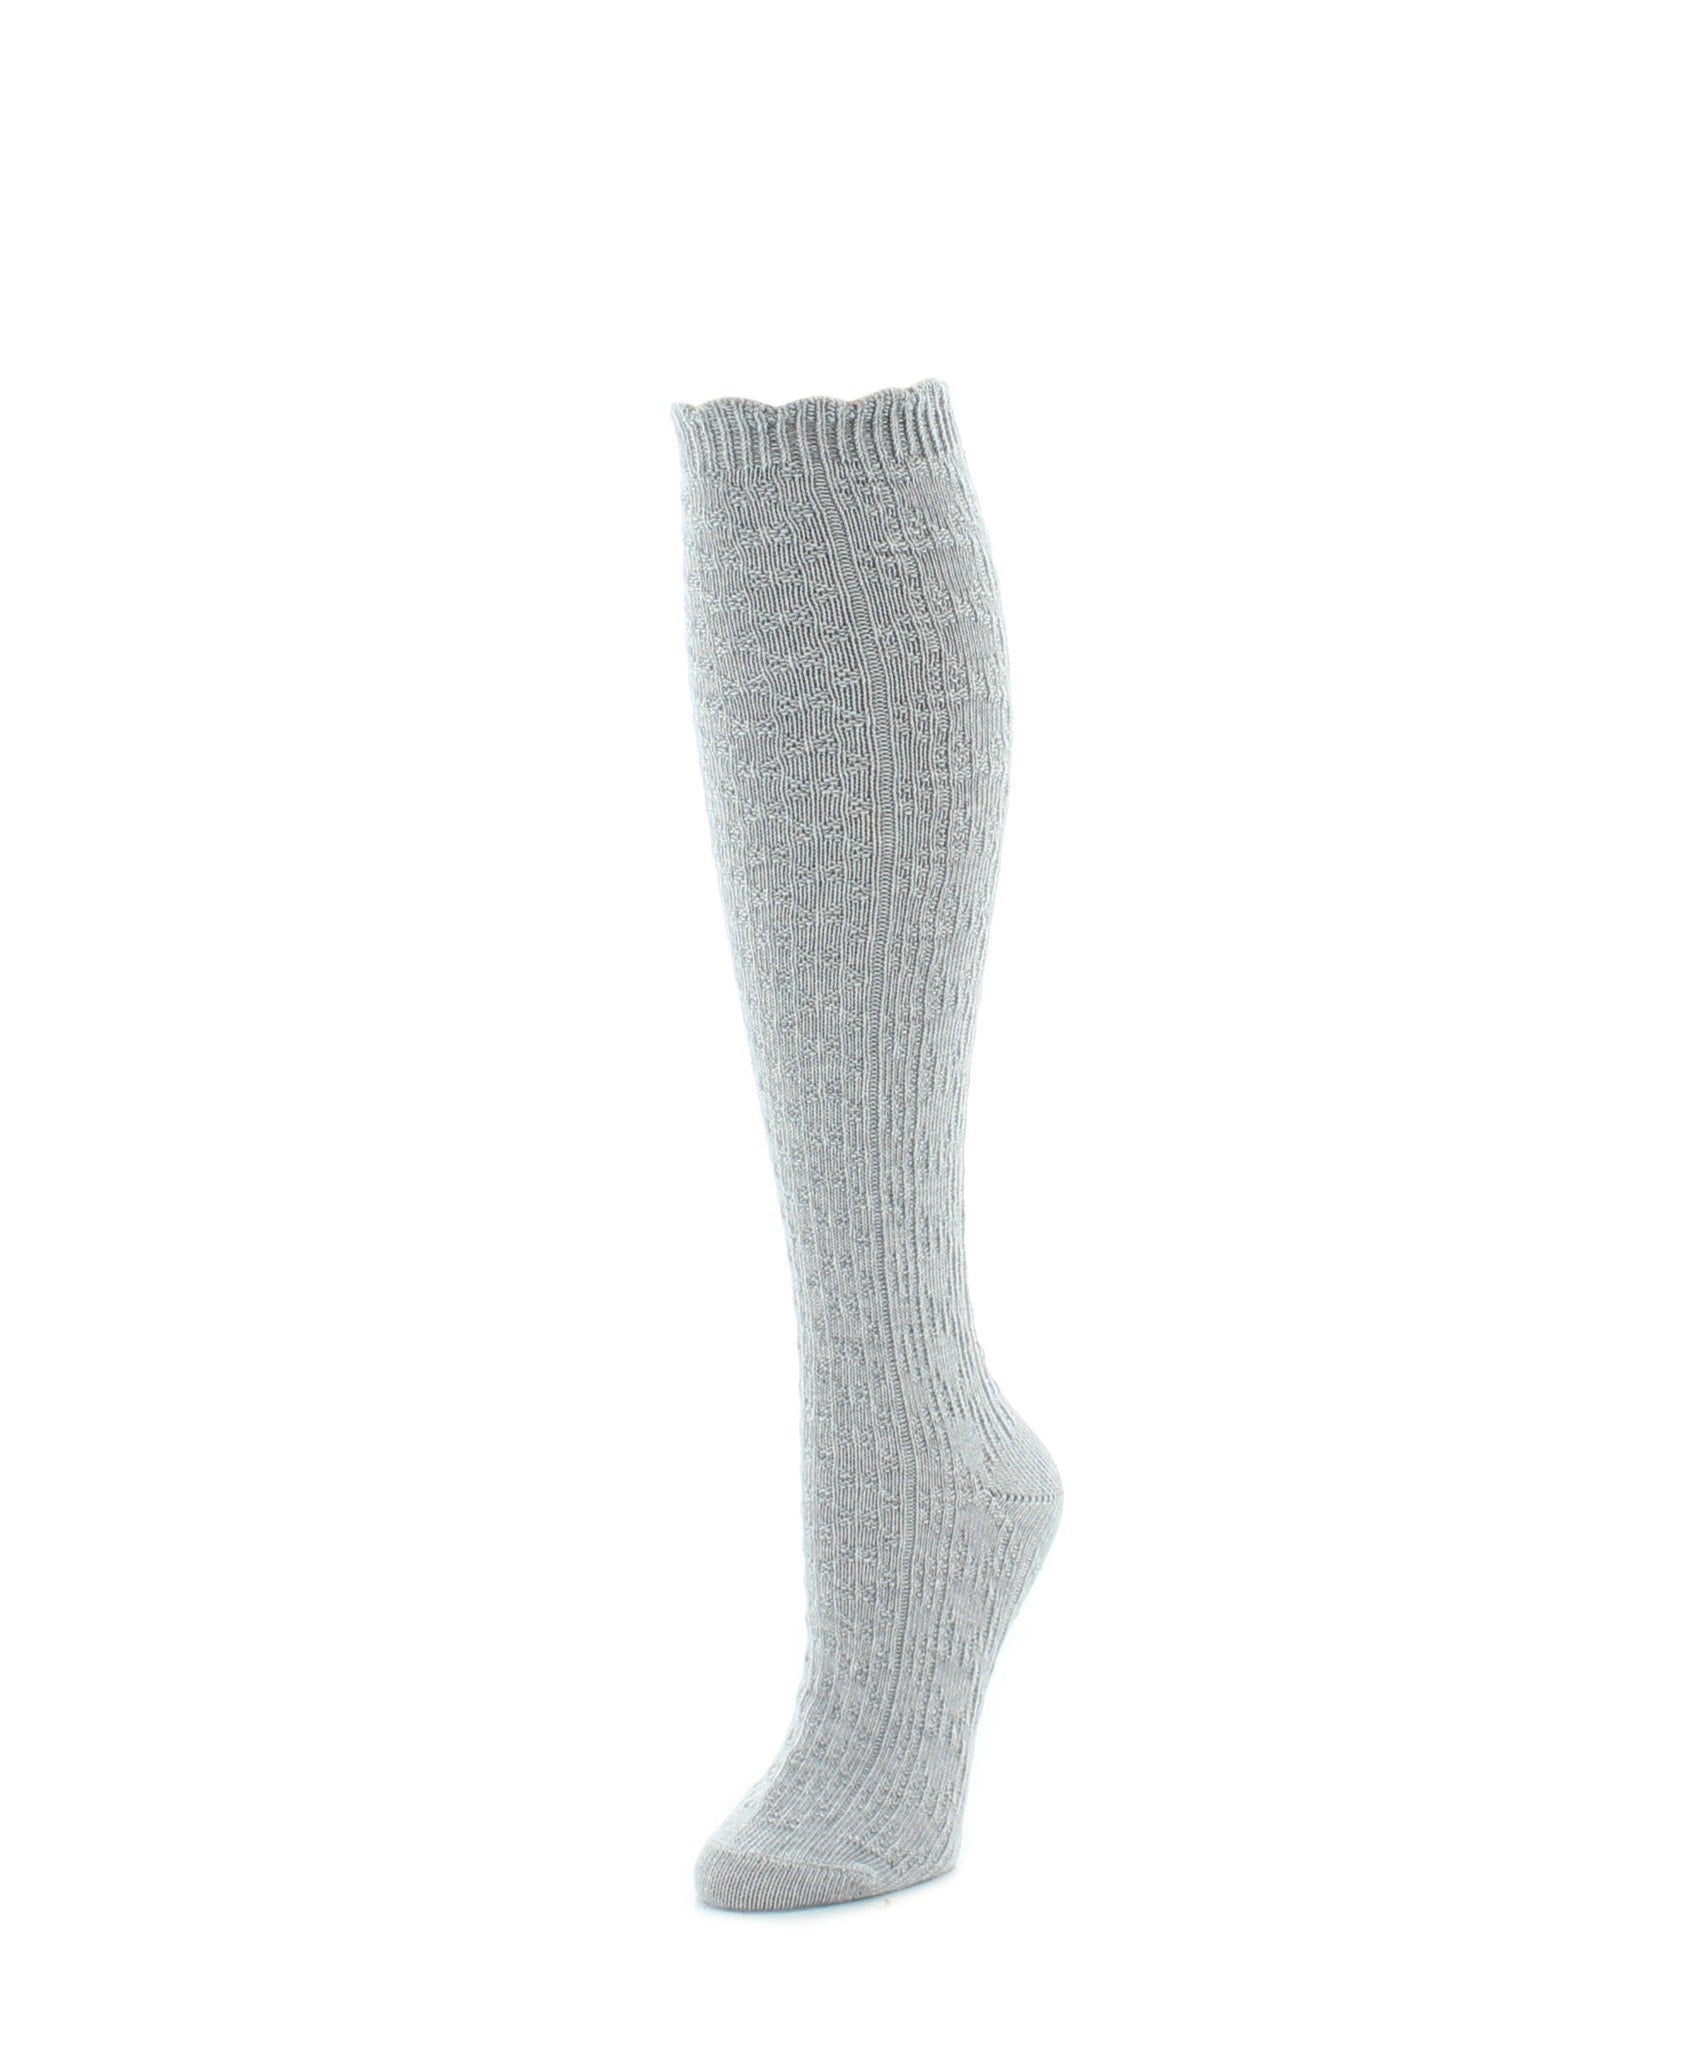 Knee High Socks | Women's Socks | Diamond Ridged - MeMoi - 3